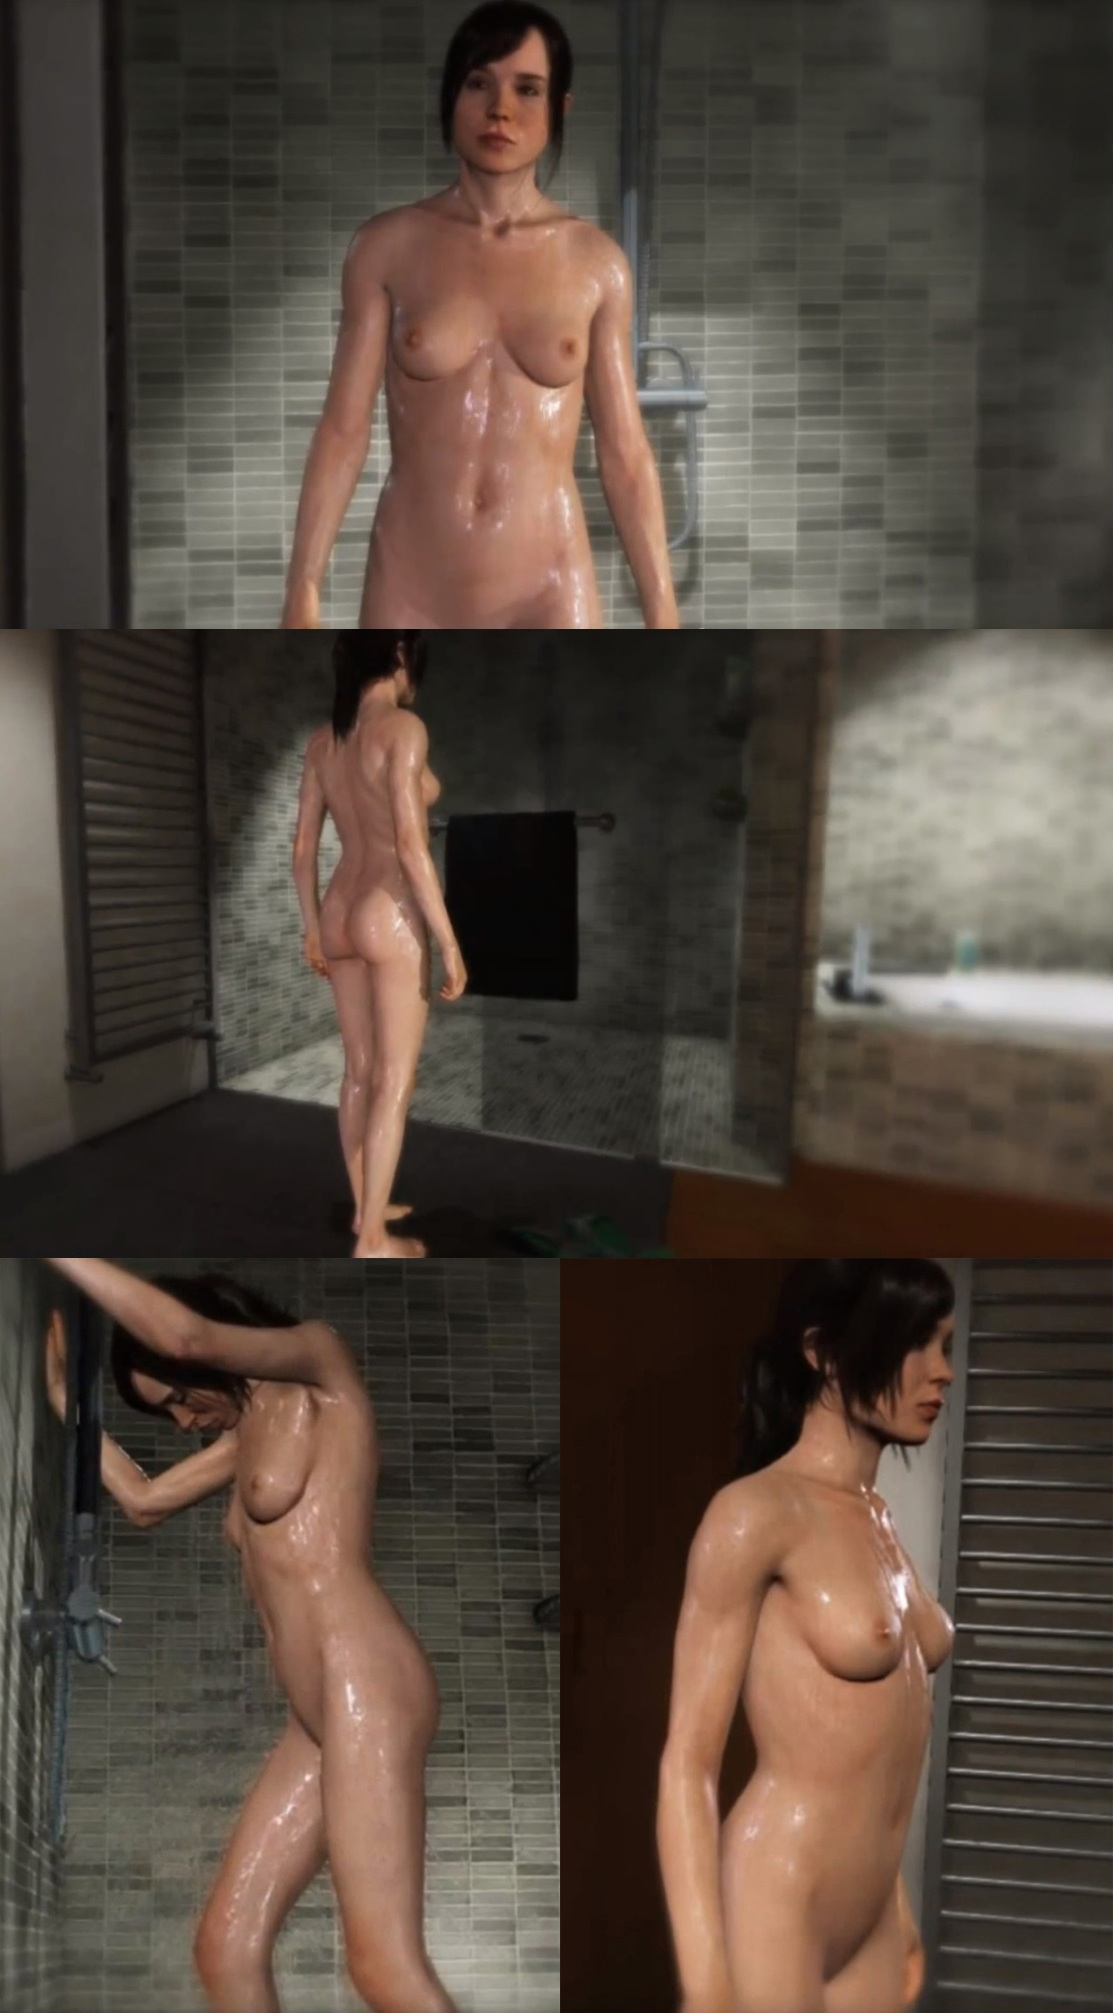 Cgi nude ass exploited picture